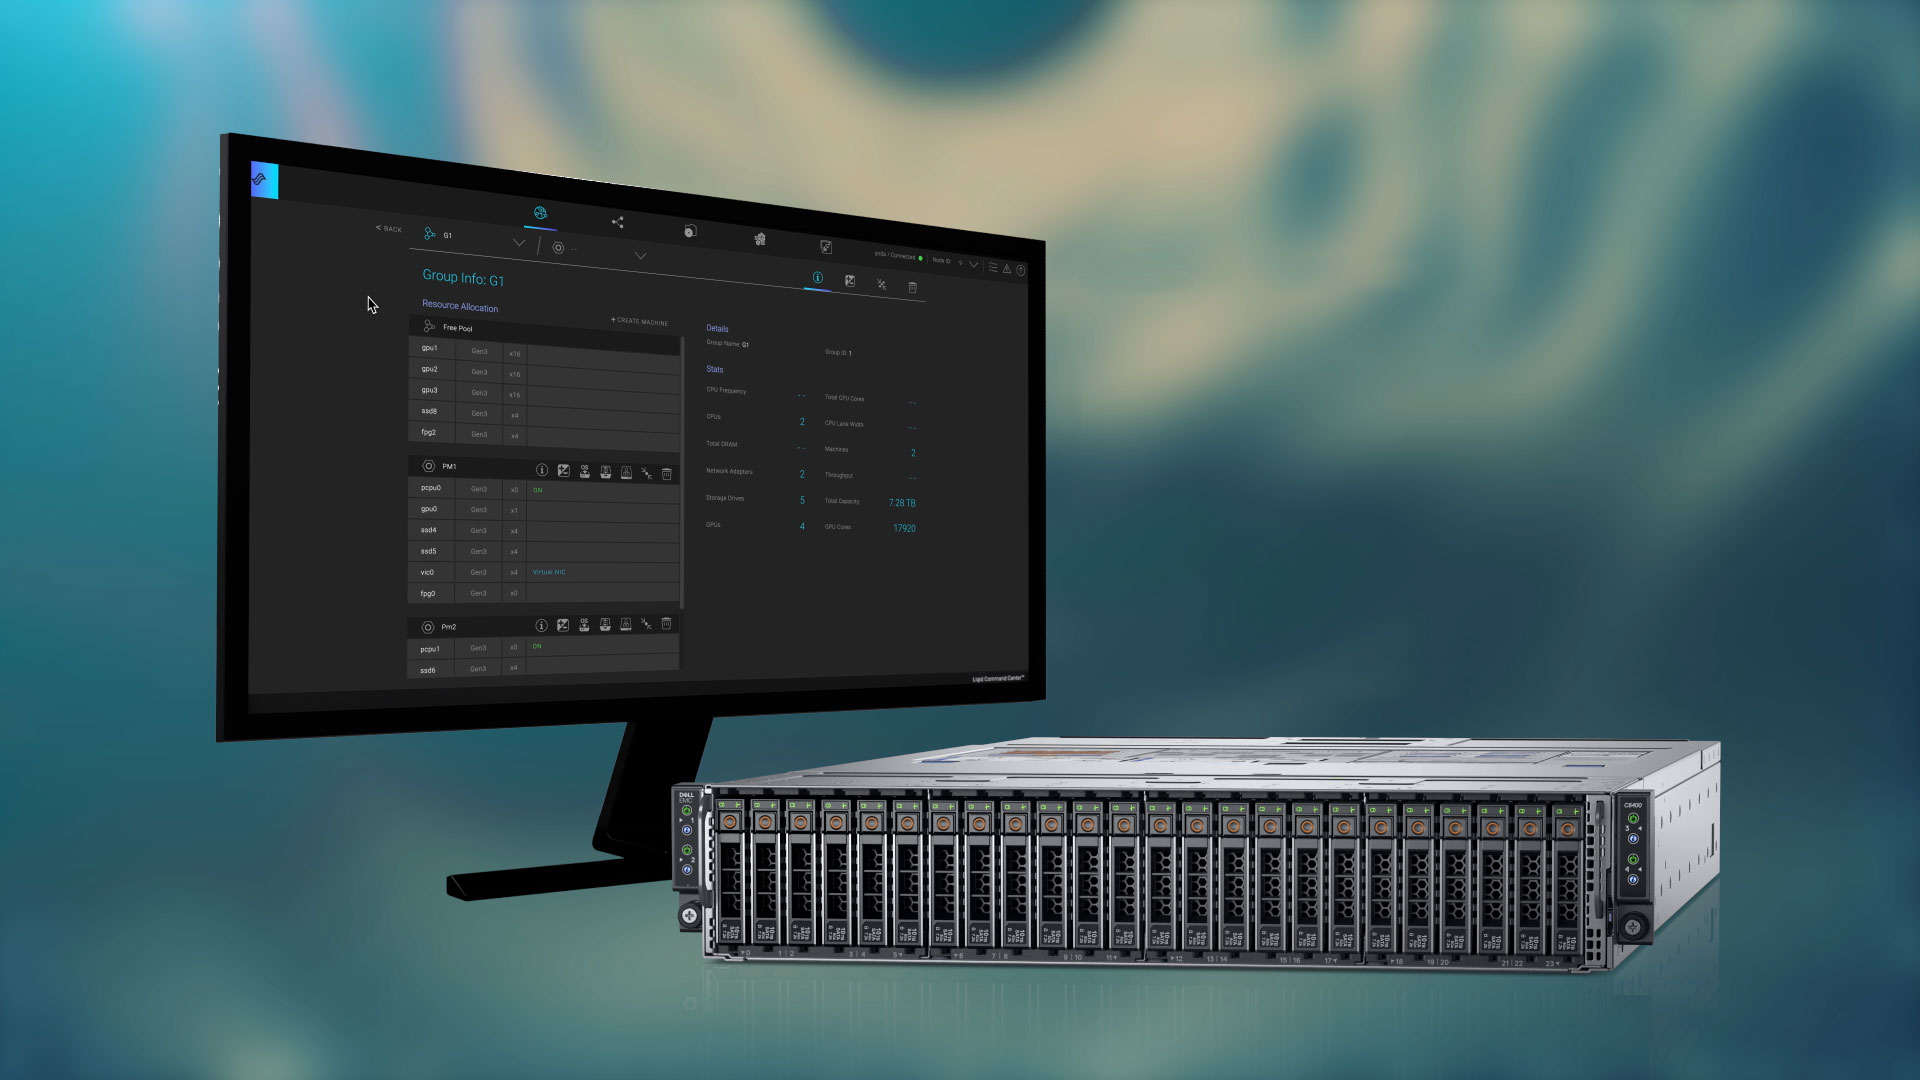 Liqid, leader in composable infrastructure and Dell's PowerEdge C6525 Server